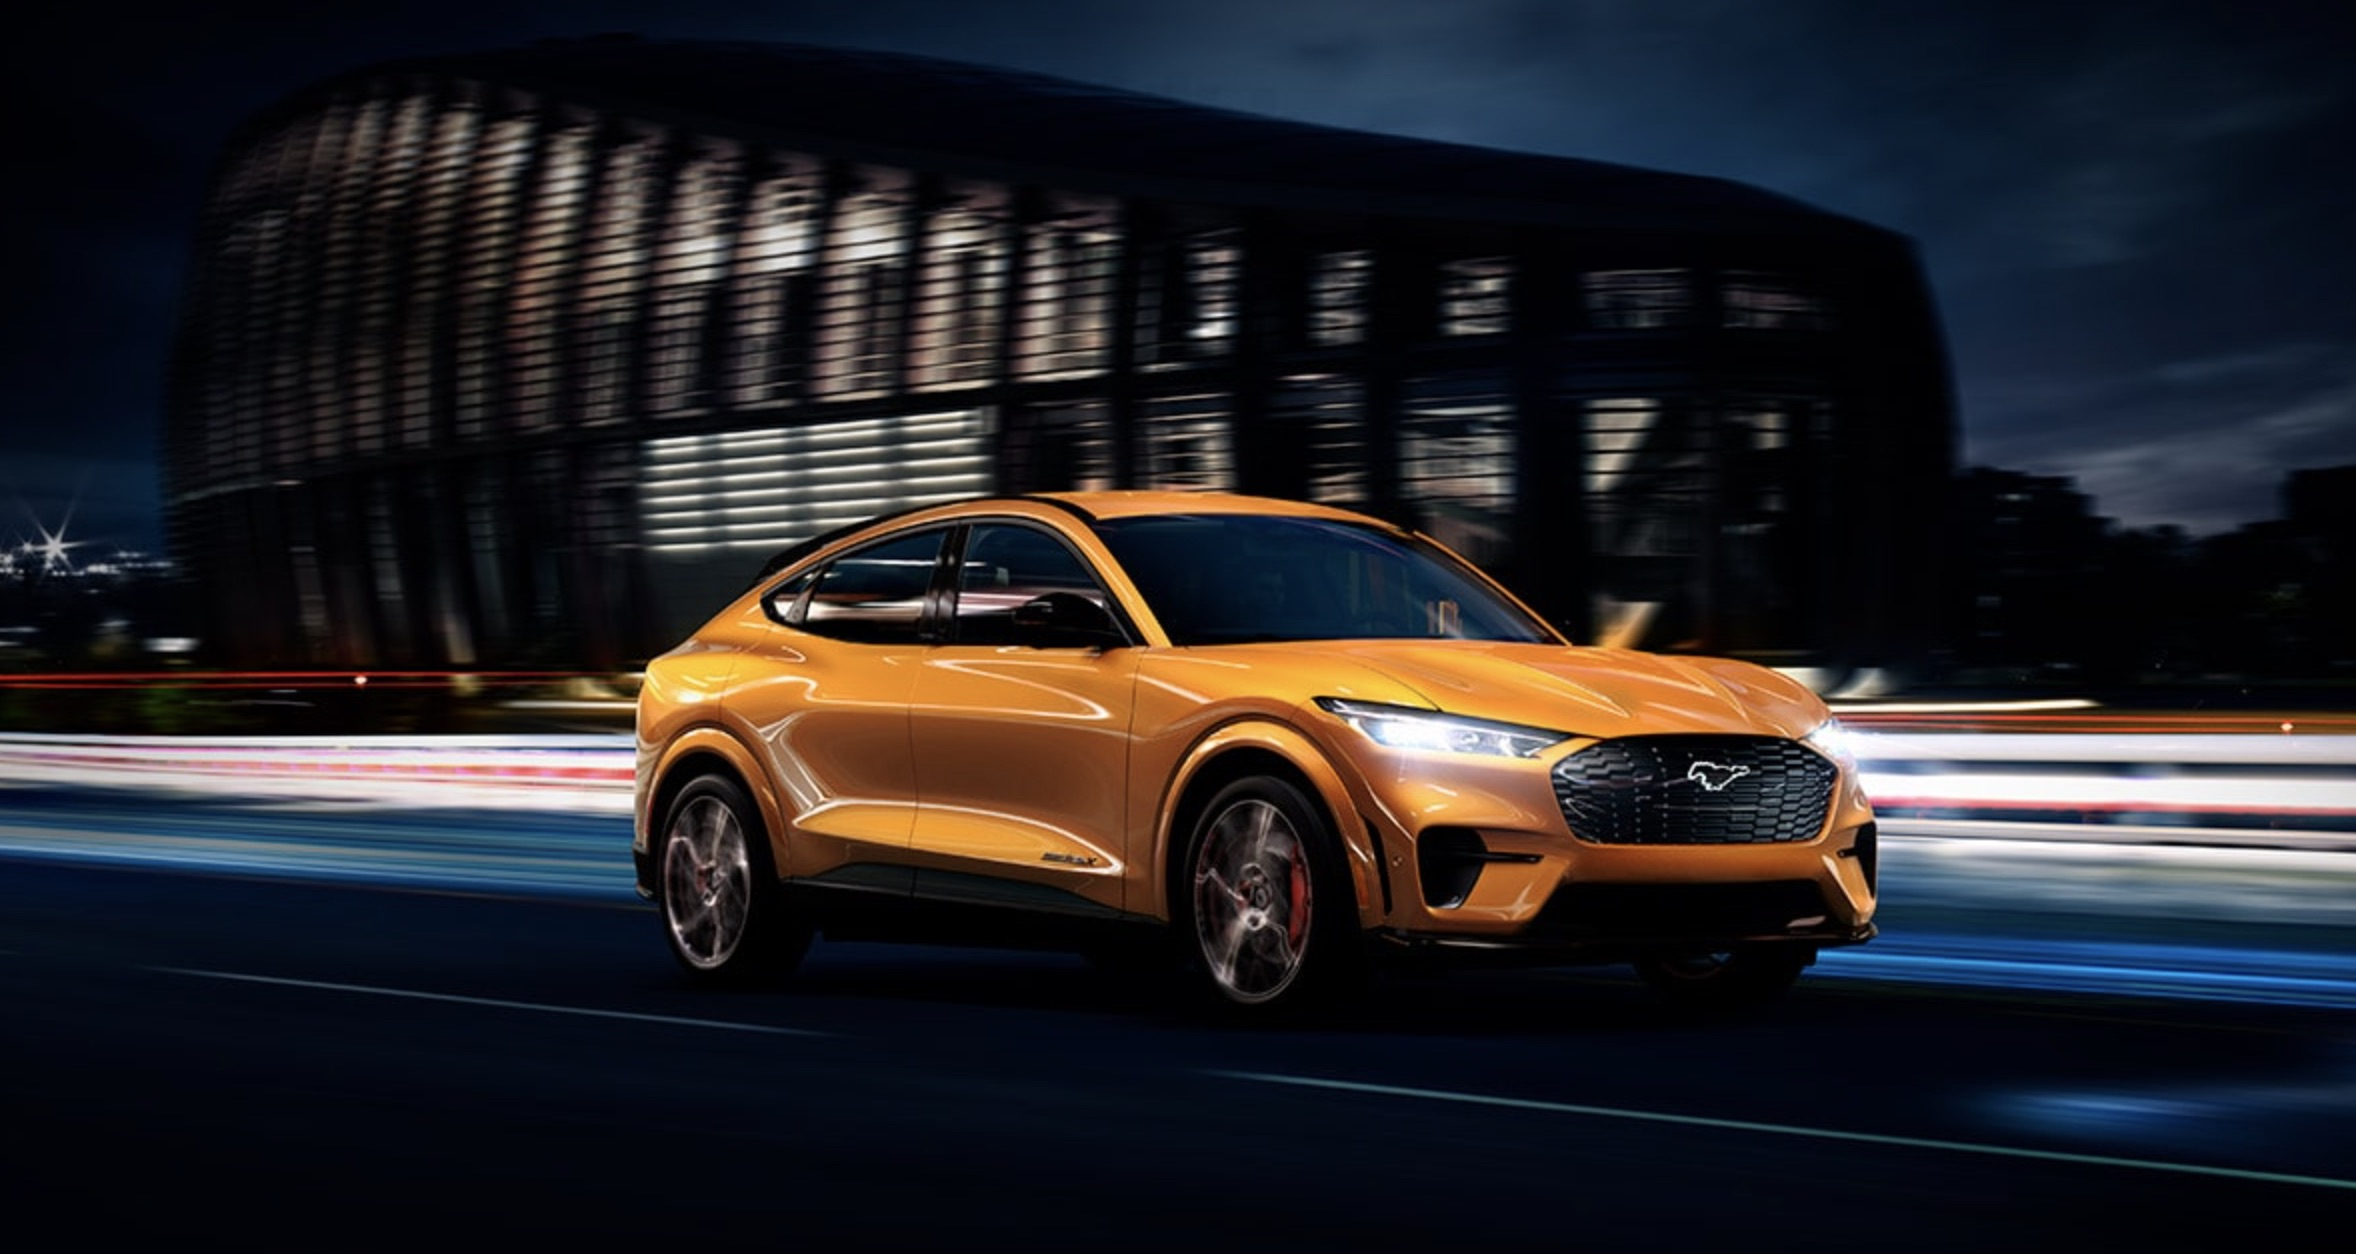 Orange 2021 Ford Mustang Mach-E driving on the road by a building